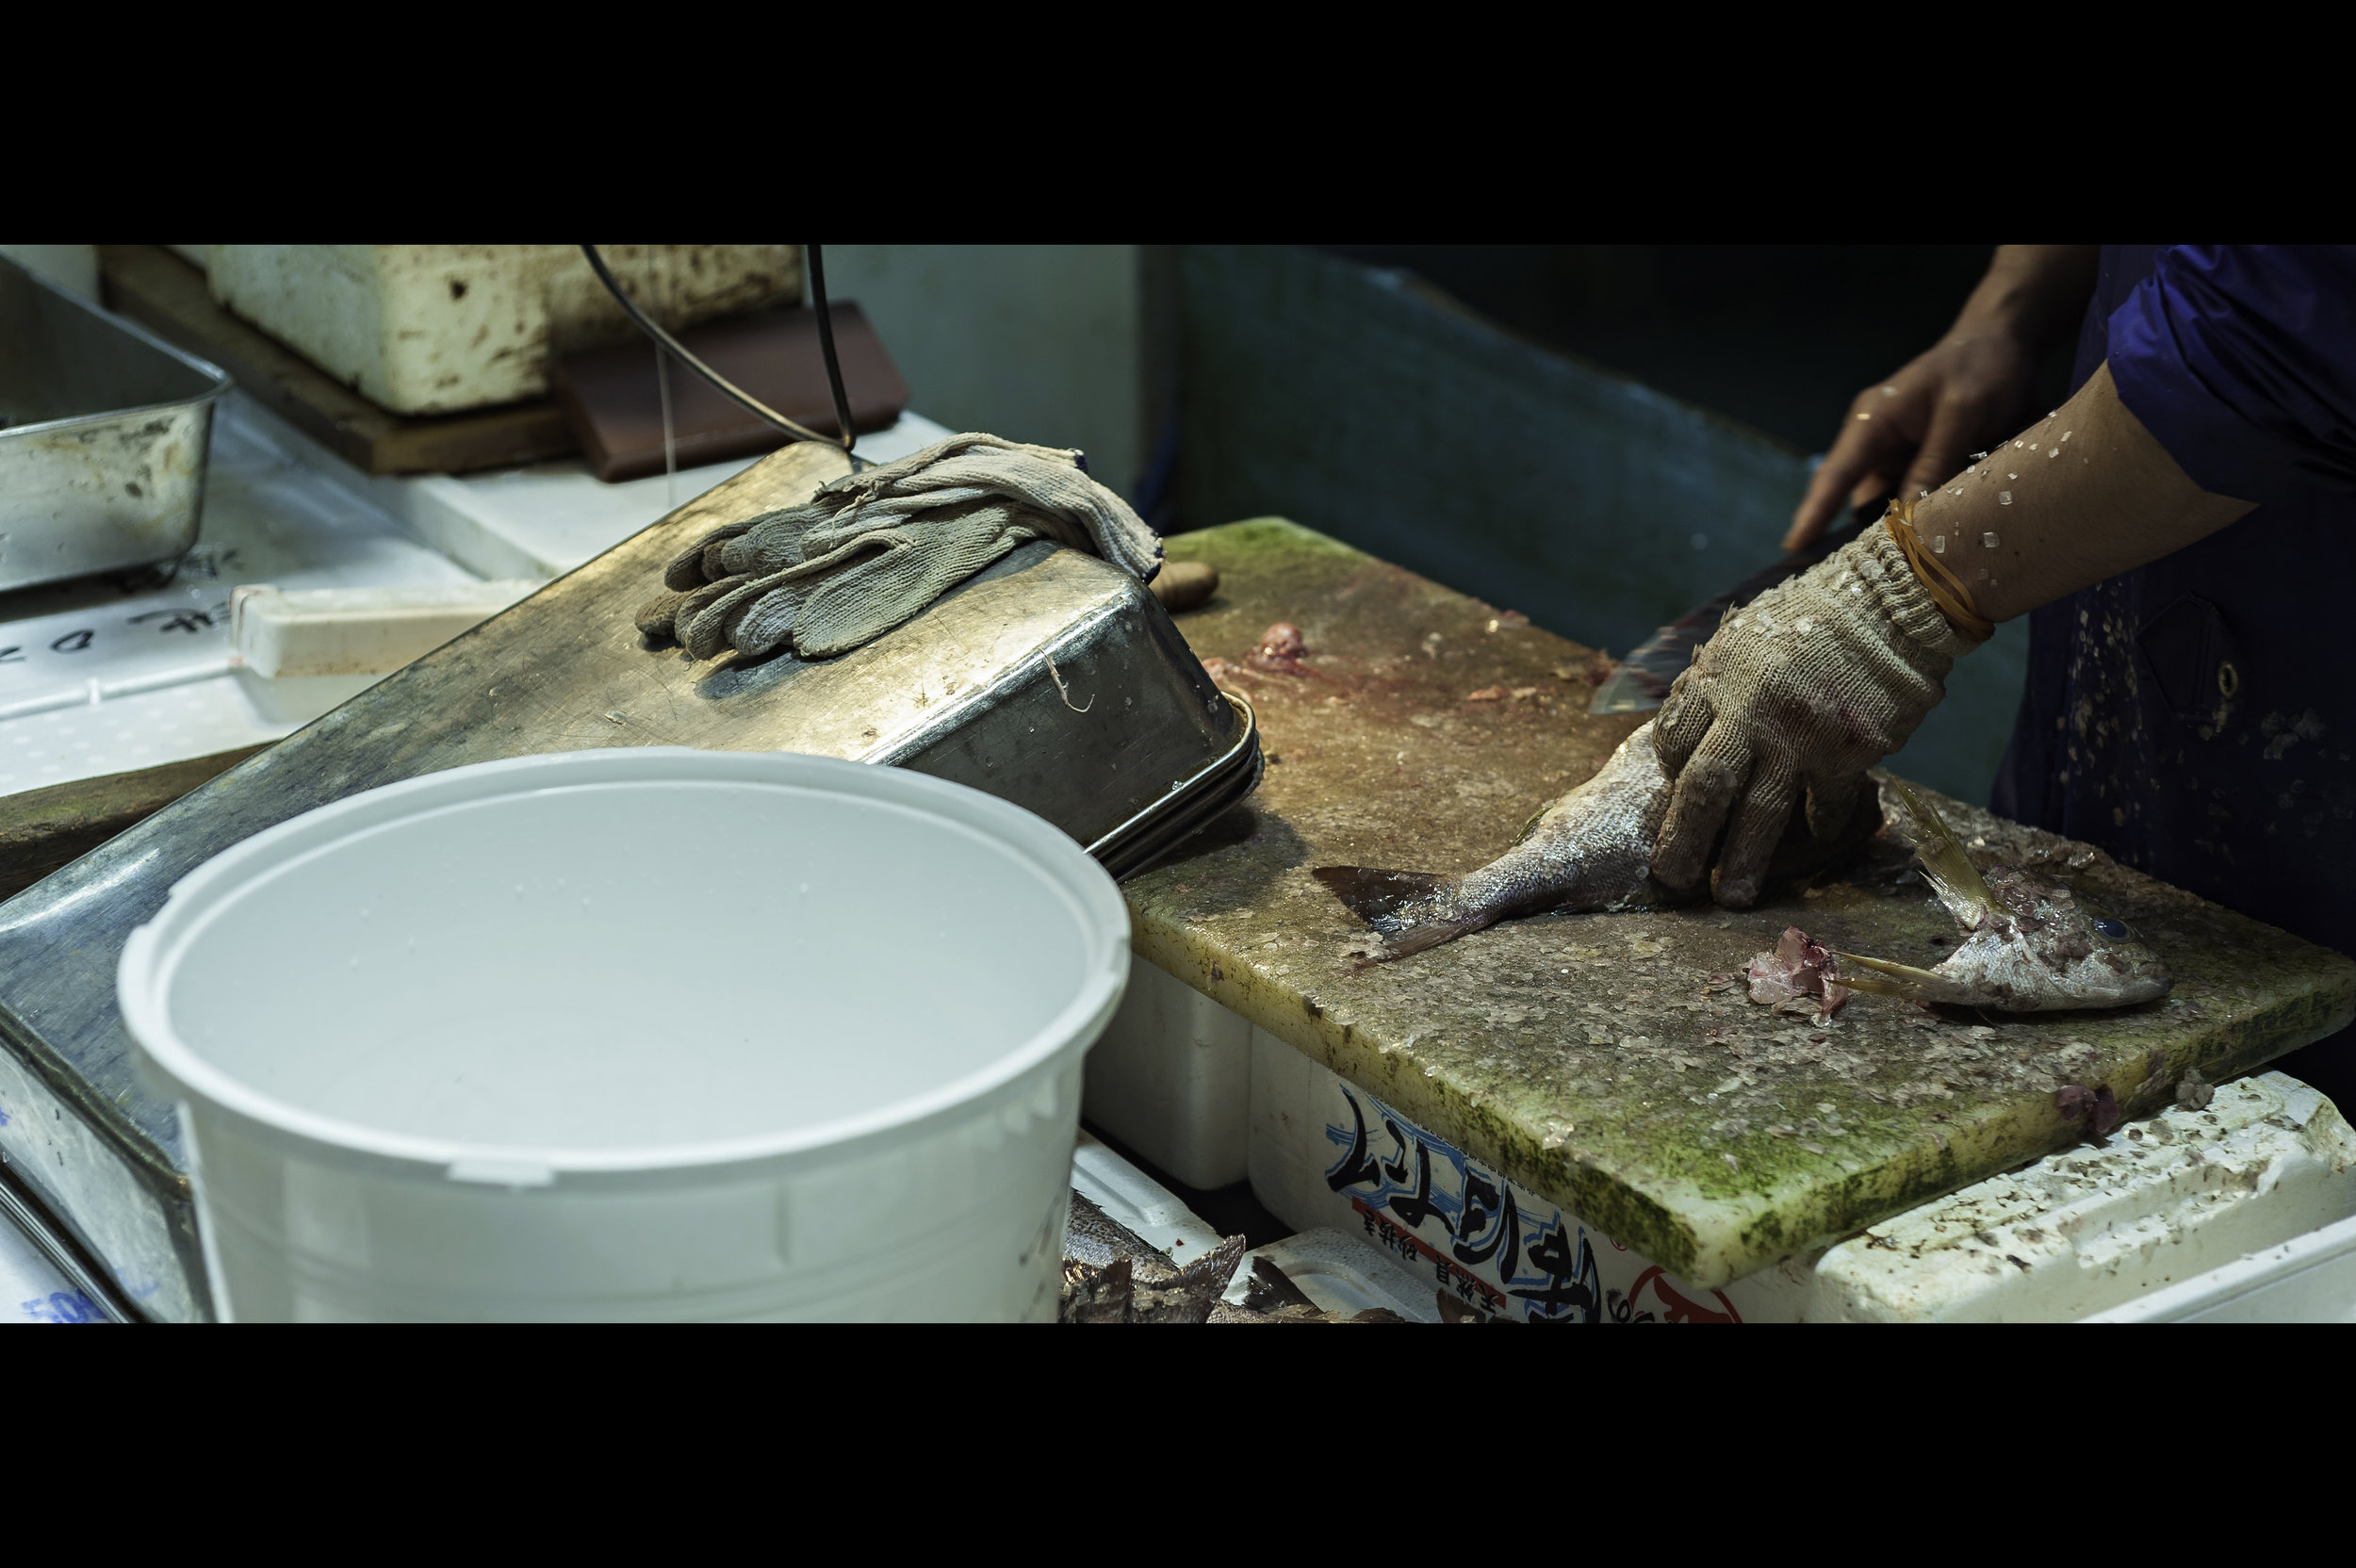 gutting-and-scaling-fish-hands-working